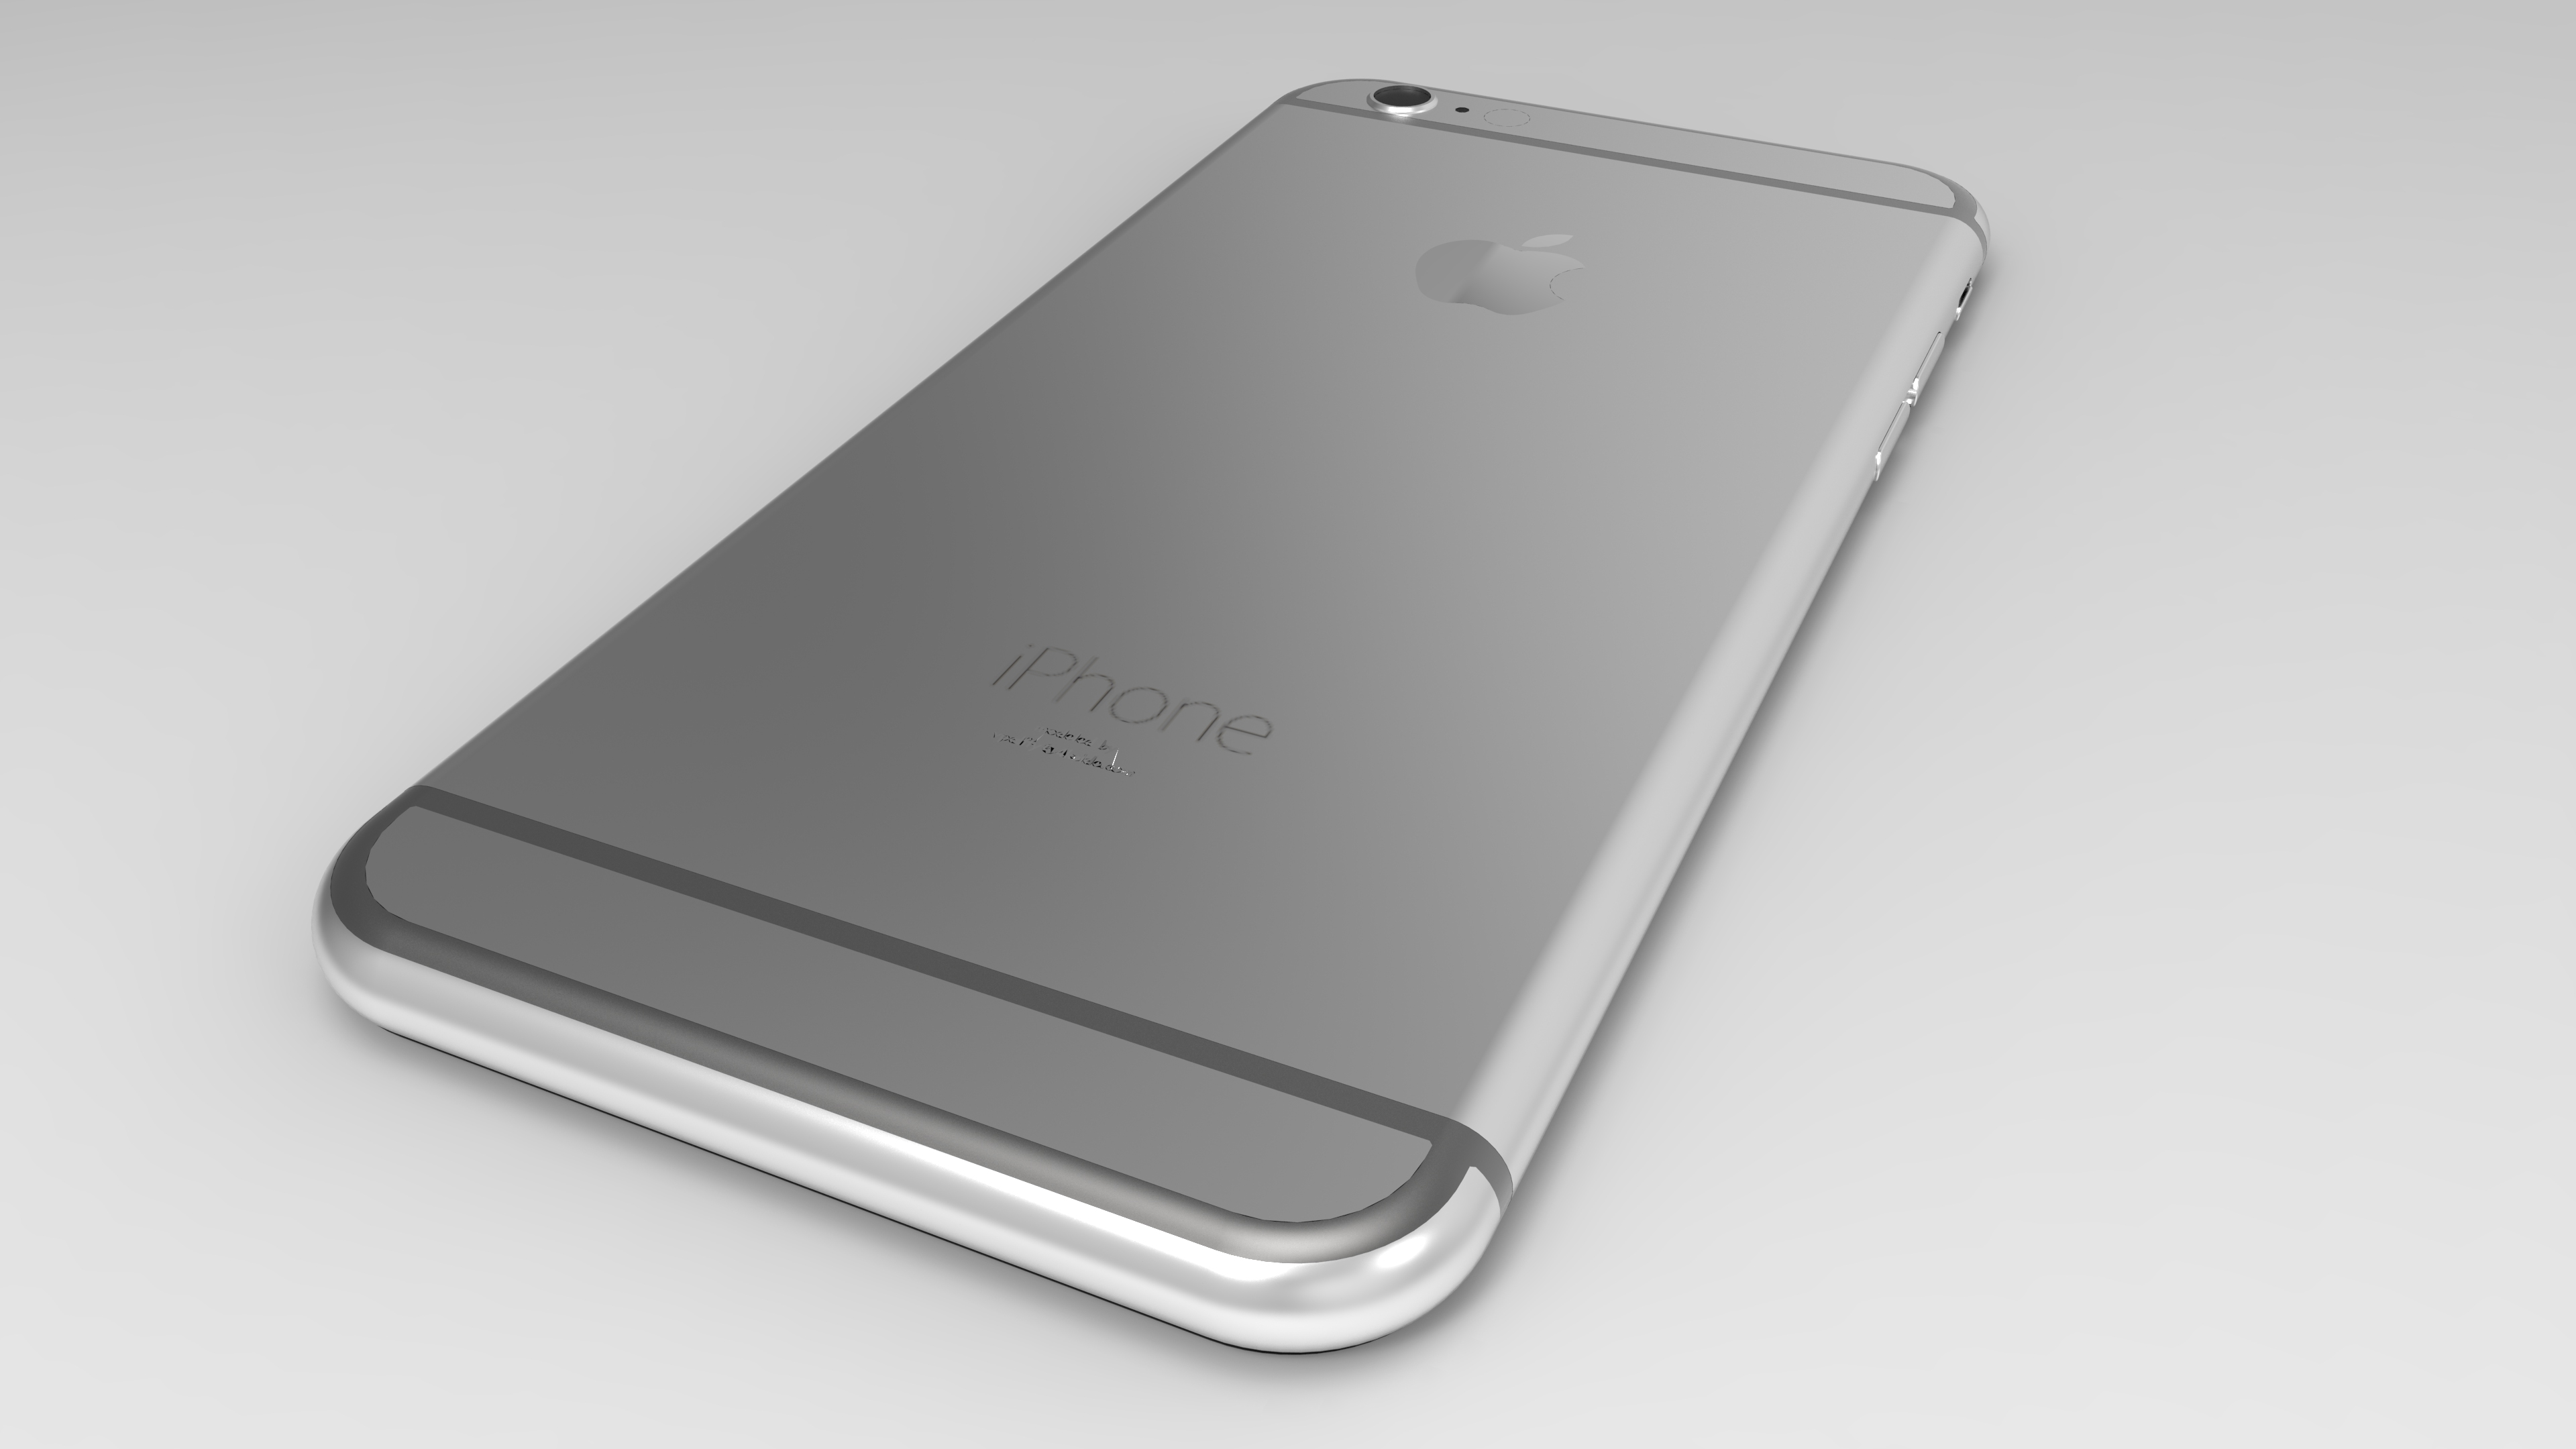 iPhone-6-render03-3840x2160_4K.jpg